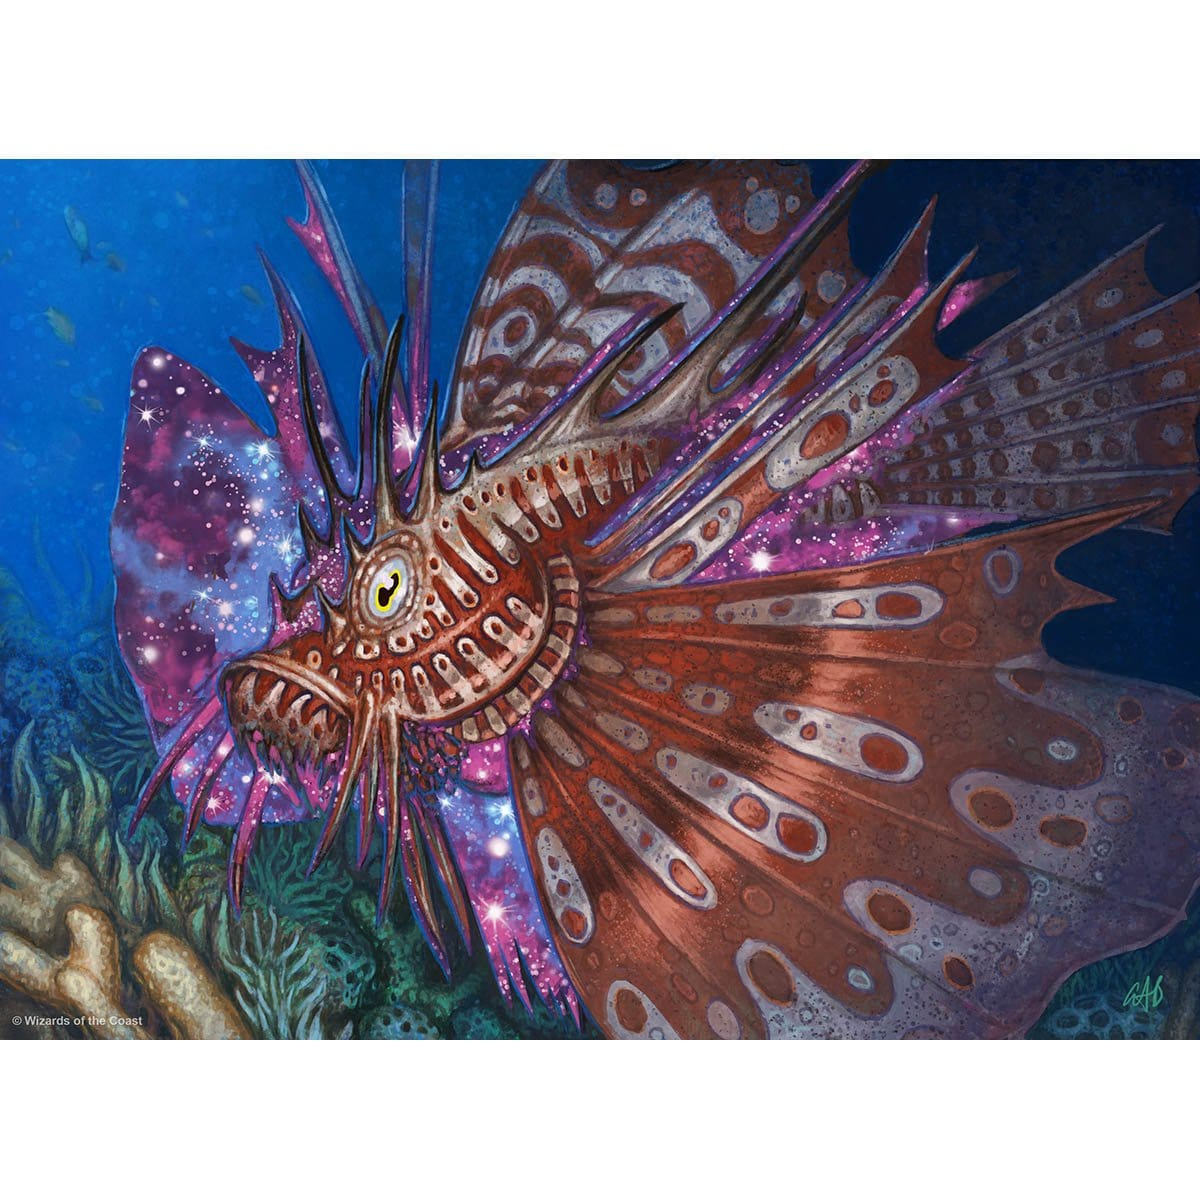 Stinging Lionfish Print - Print - Original Magic Art - Accessories for Magic the Gathering and other card games